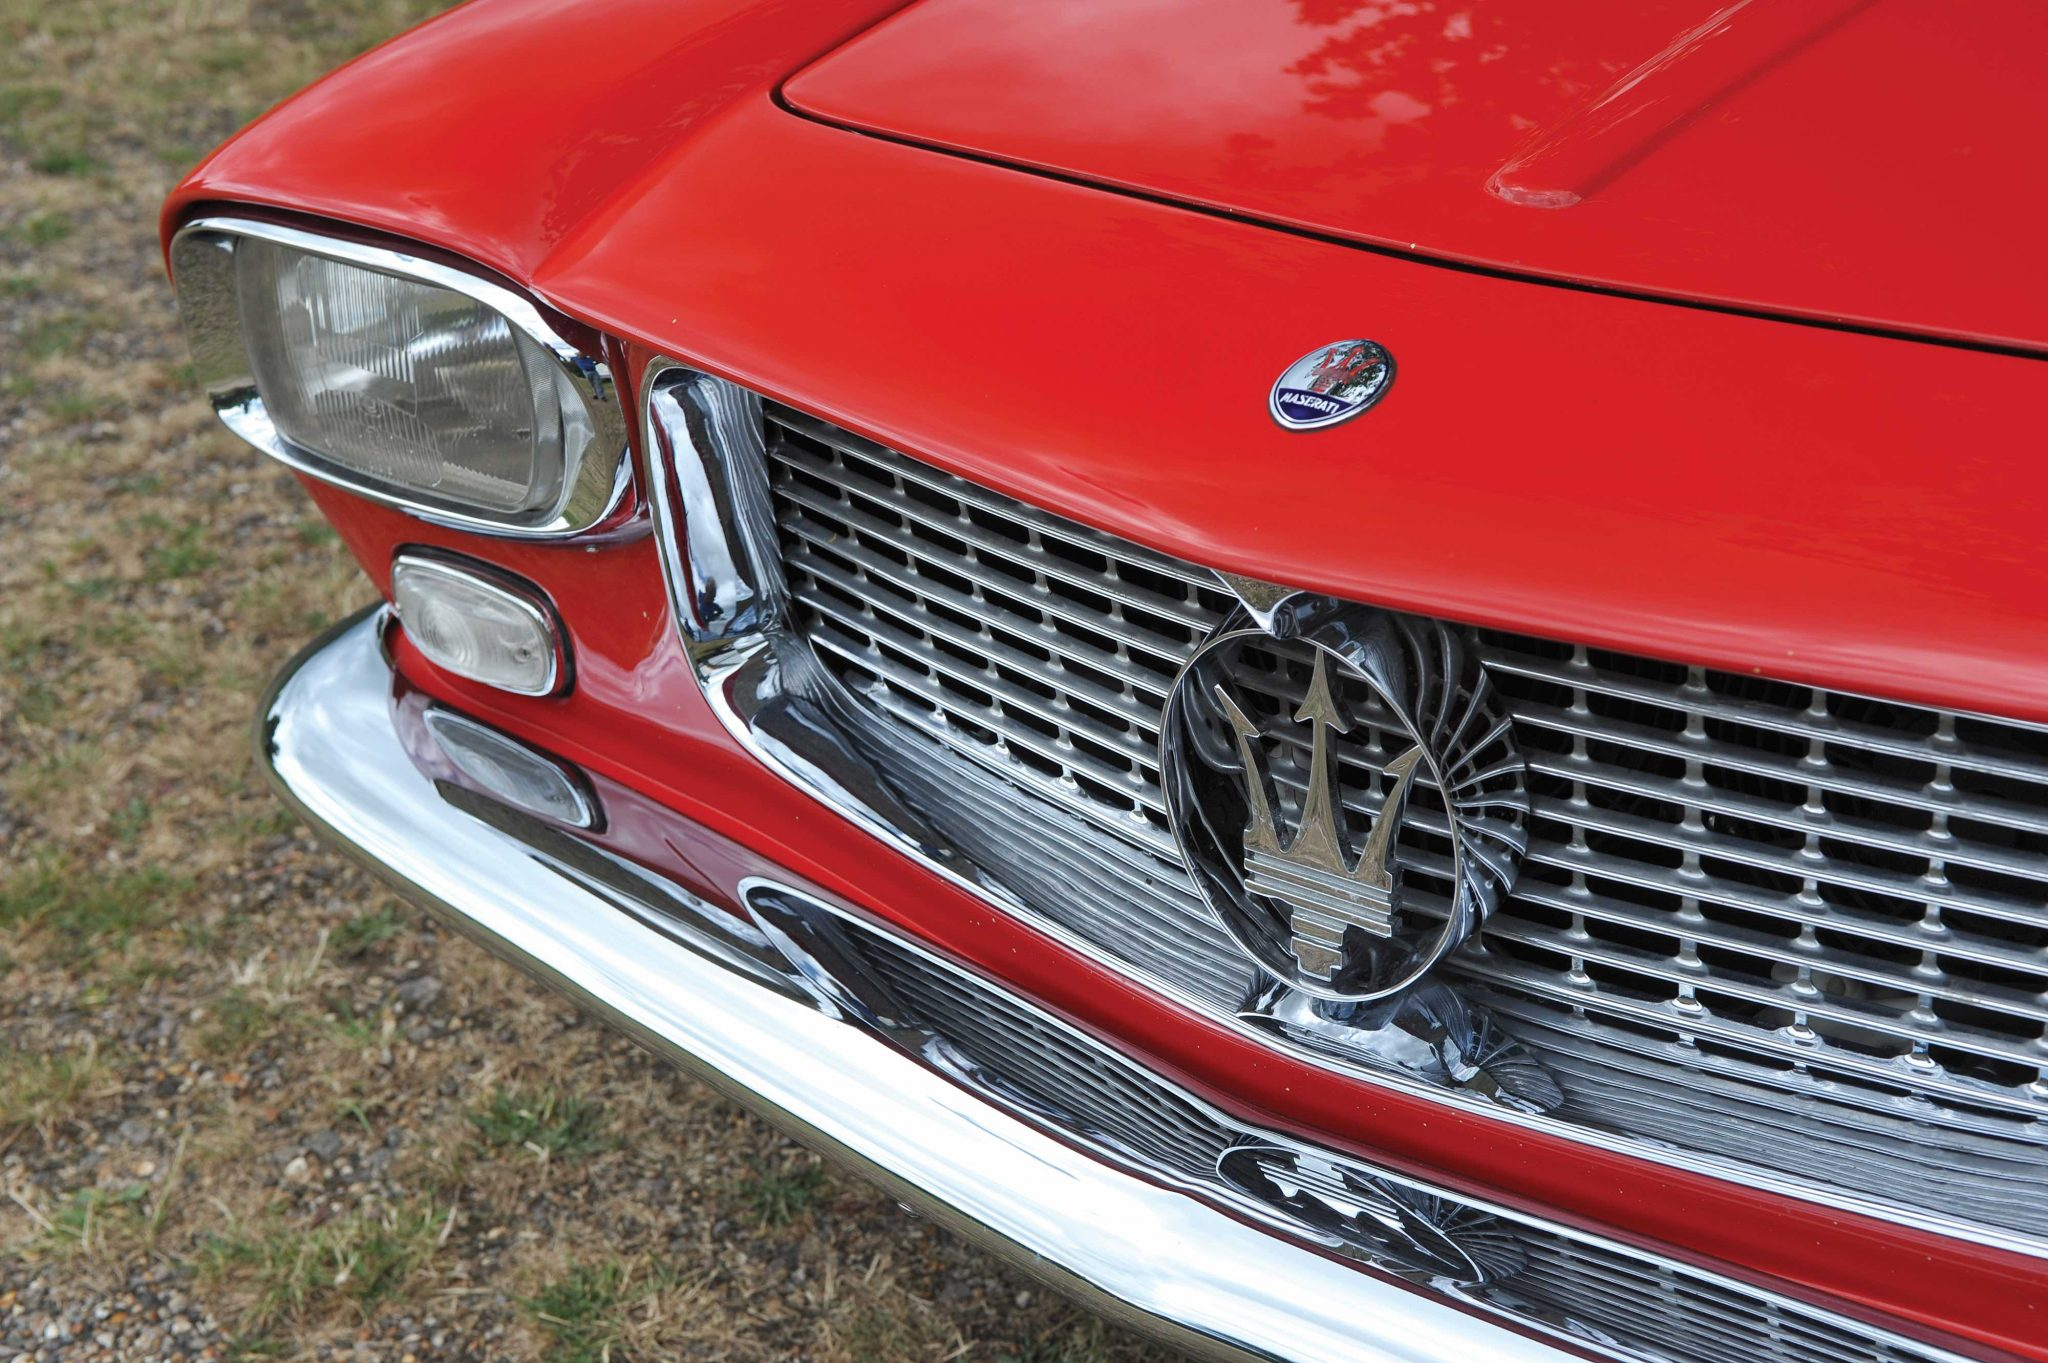 1959 Maserati 5000 GT front grille